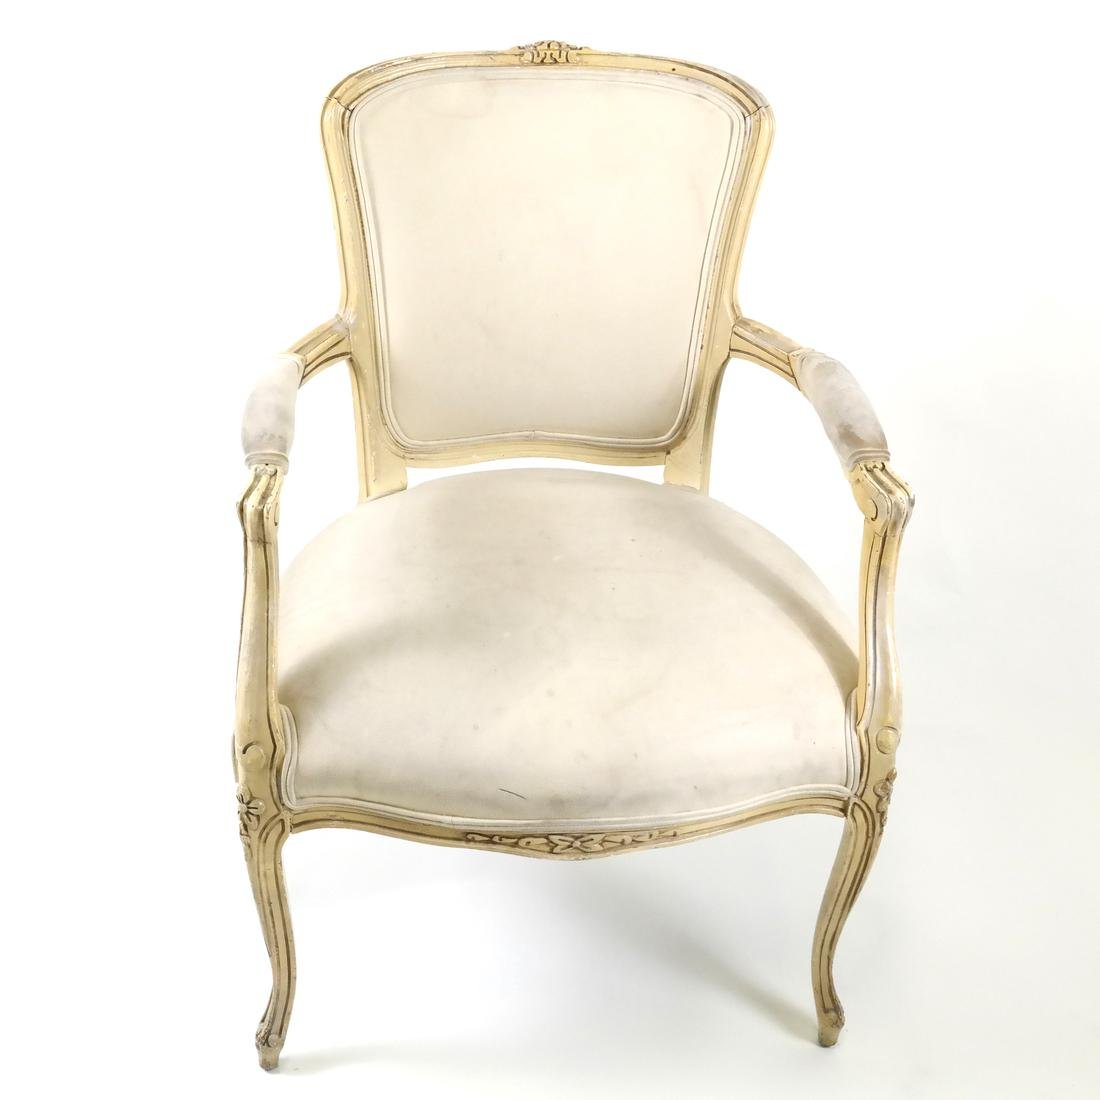 French-Style Painted Armchair - 2